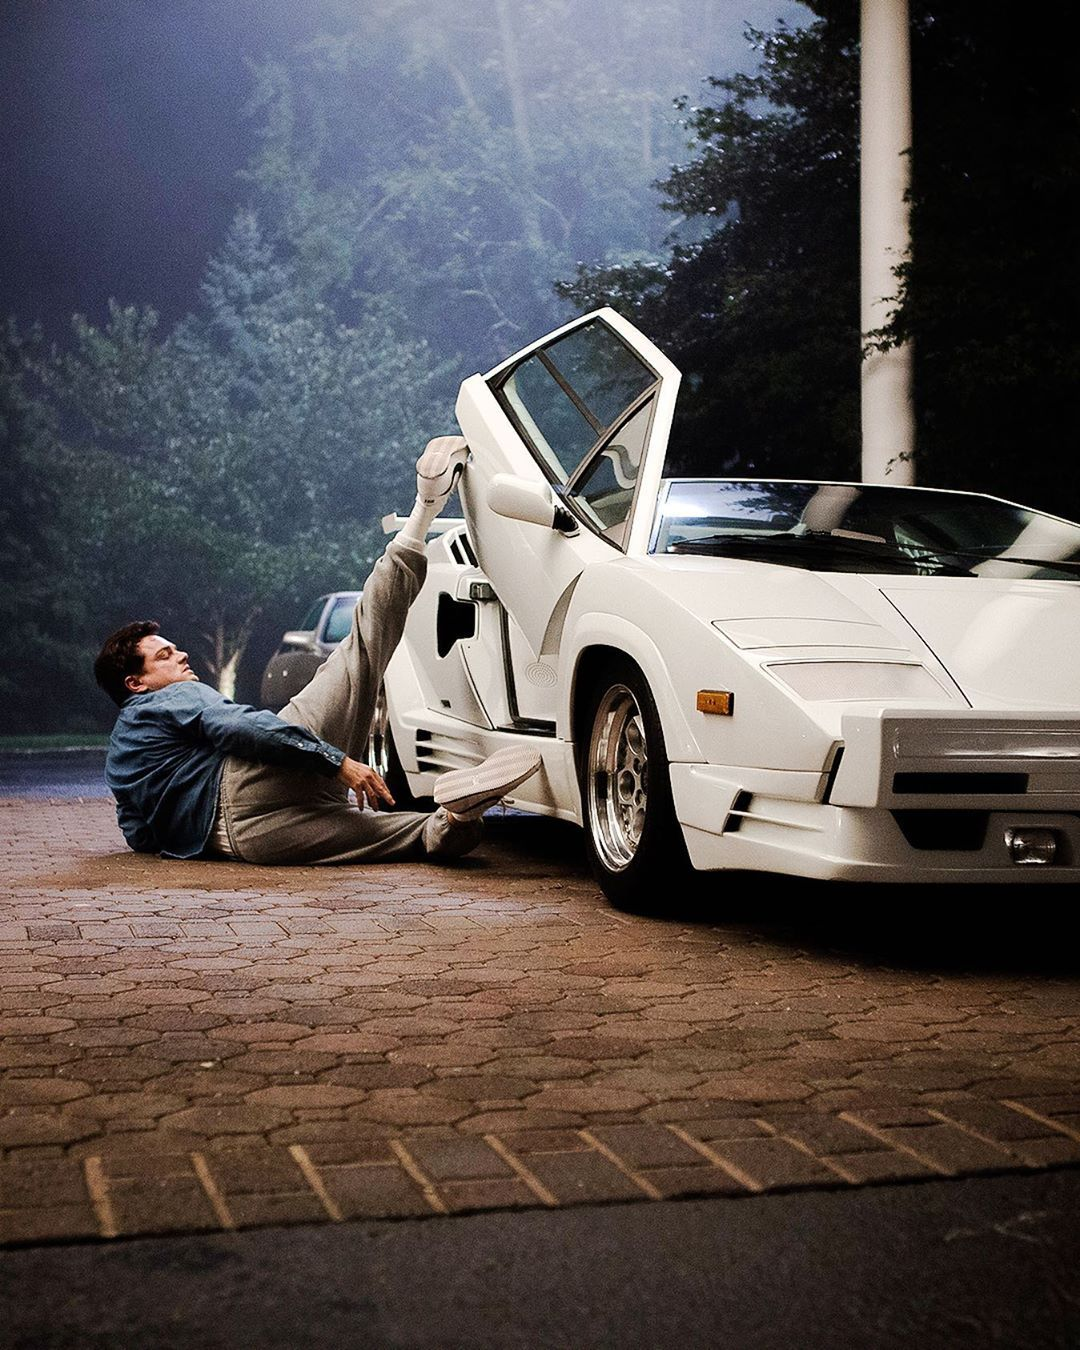 The Wolf Of Wall Street Wolf Of Wall Street Funny Pictures Lamborghini Countach The wolf of wall street wallpaper iphone